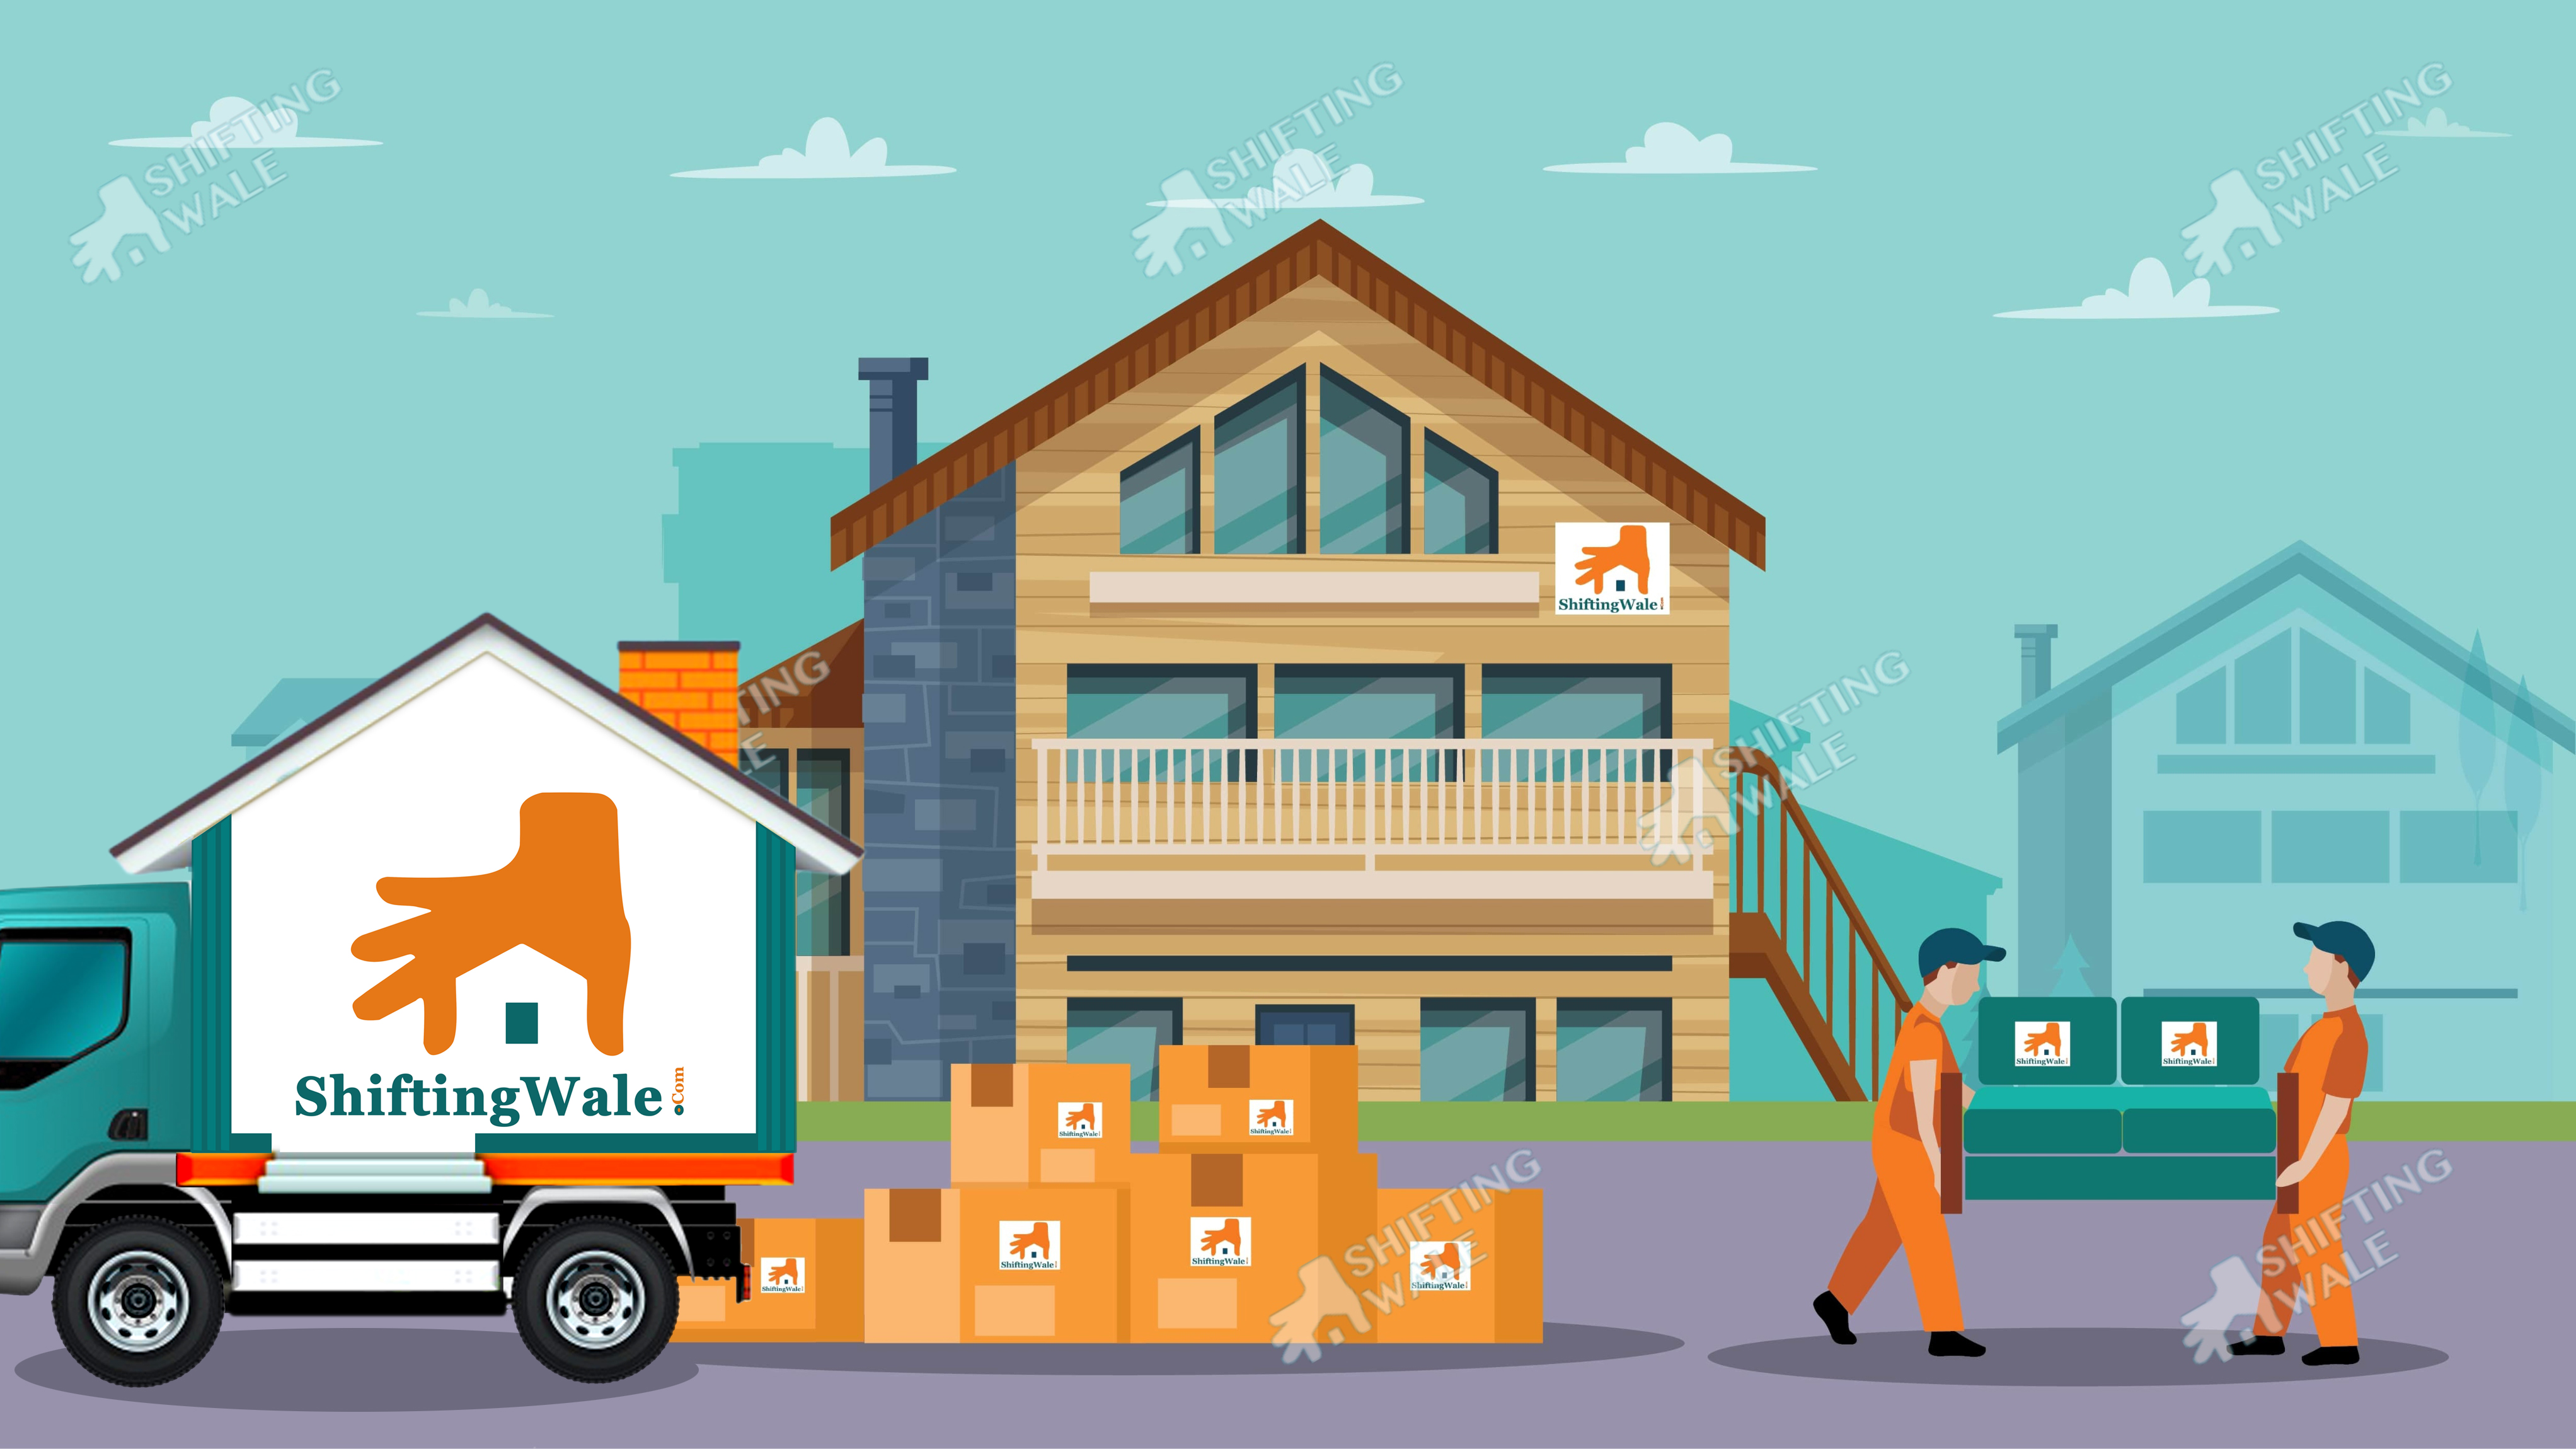 Best Packers and Movers from Dehradun Haridwar Roorkee to Indirapuram Crossing Republik Vasundhara Vaishali Ghaziabad